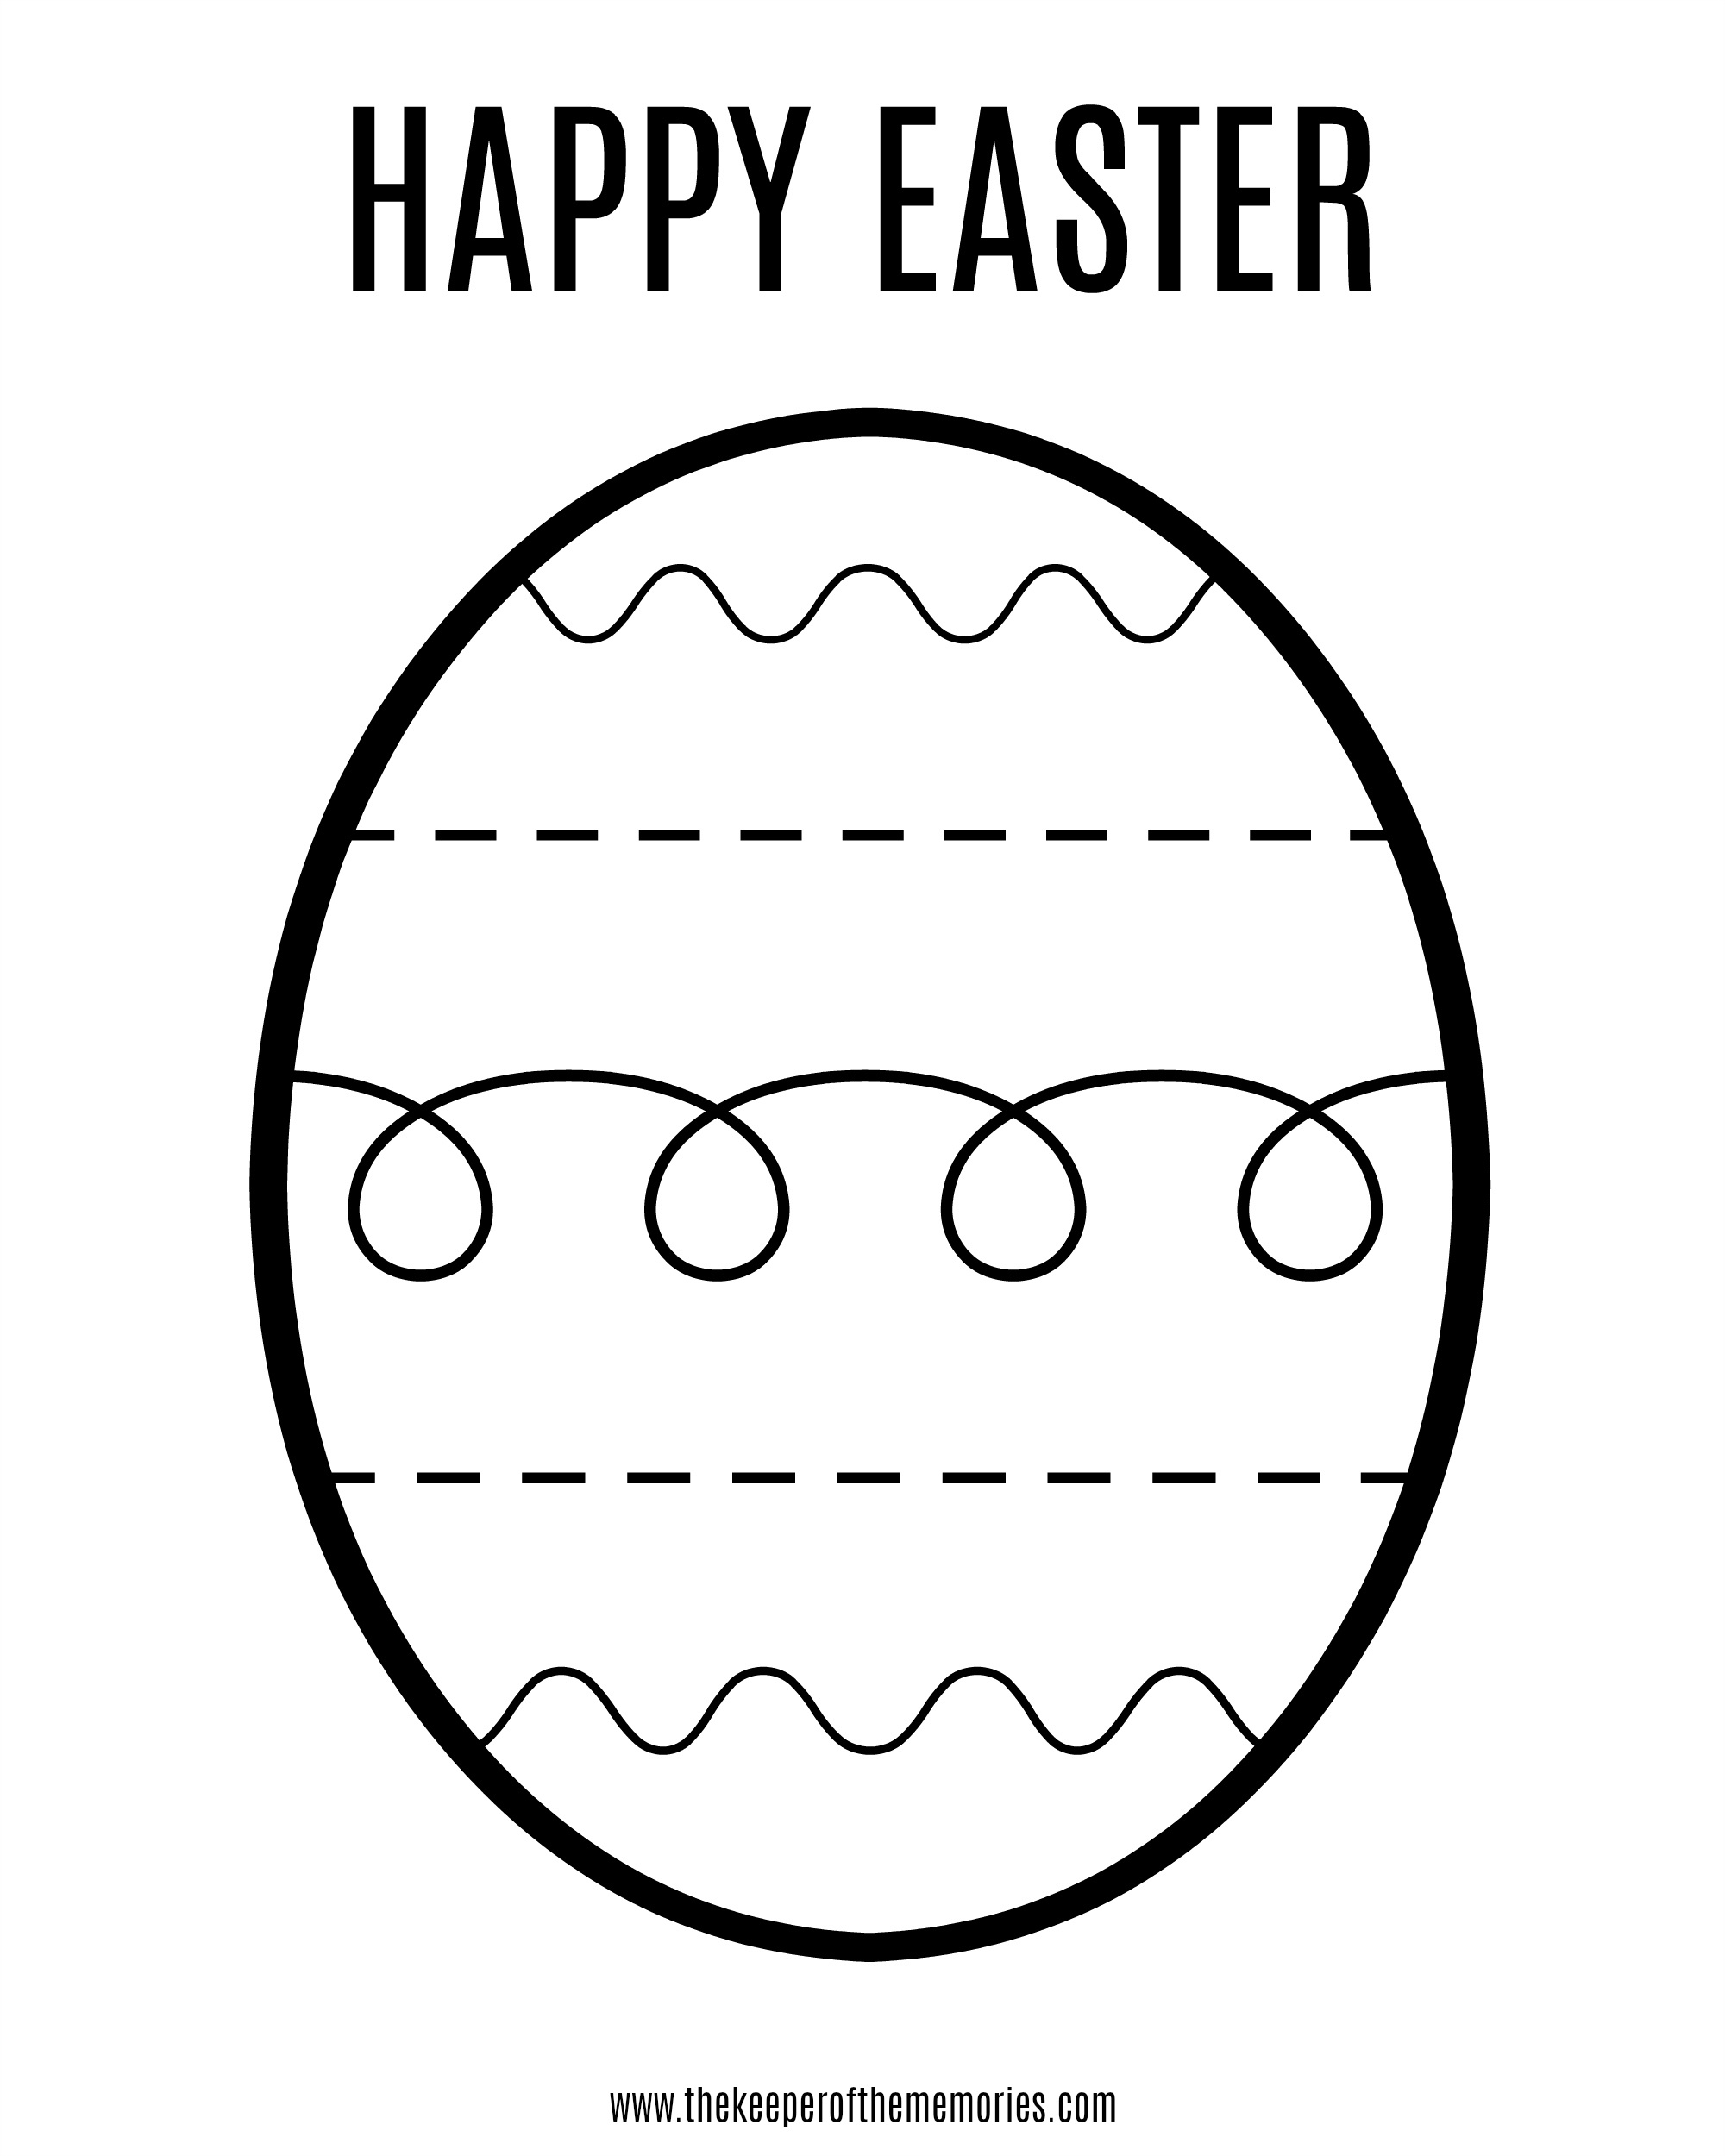 Free Printable Easter Coloring Sheet For Little Kids - The Keeper Of - Easter Egg Coloring Pages Free Printable